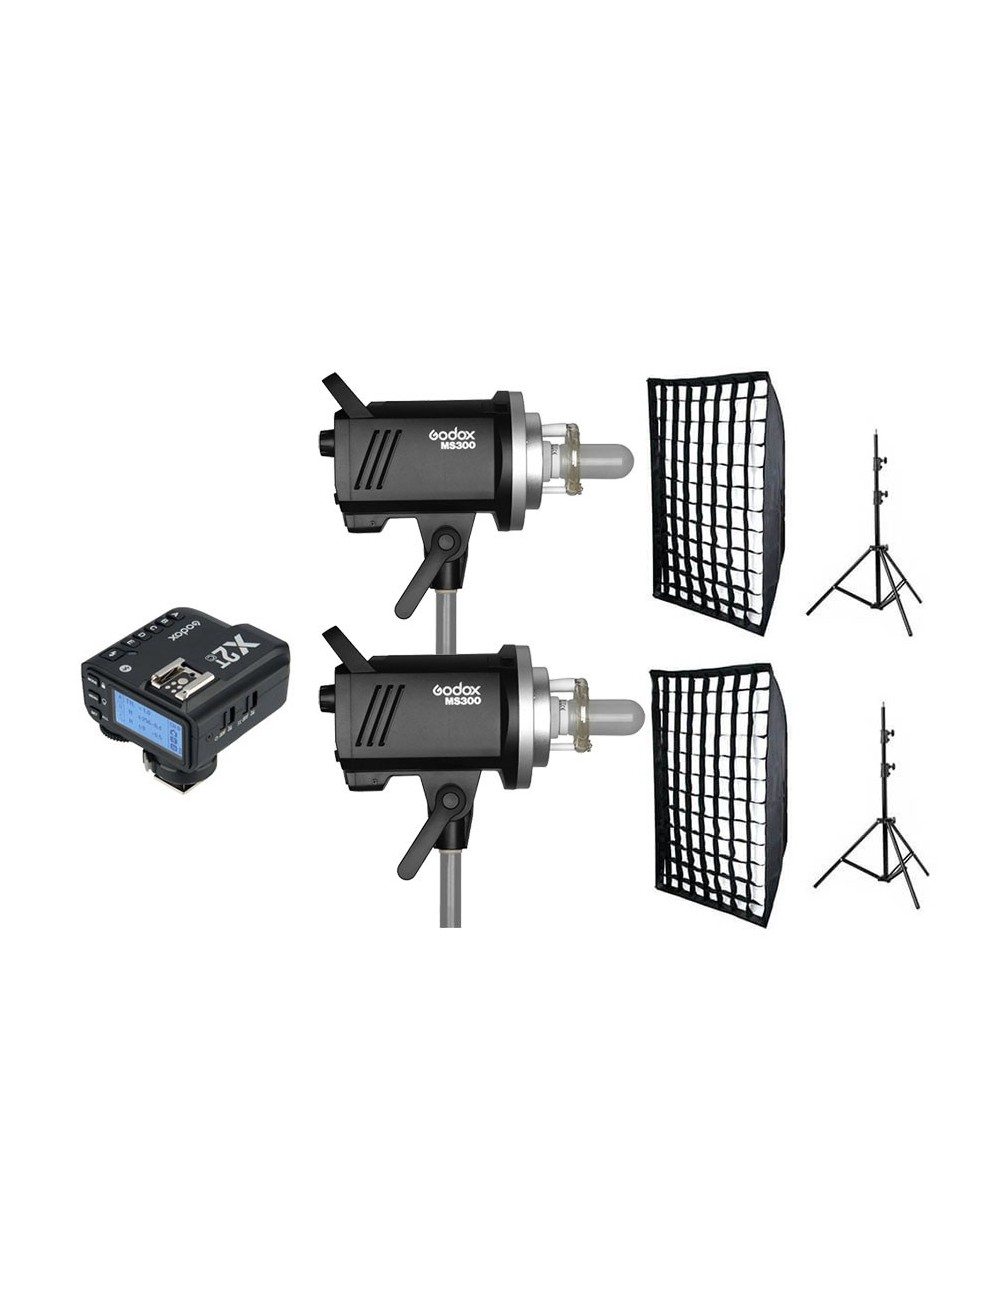 Kit 2 Godox MS300 flashes de estudio y accesorios Sony